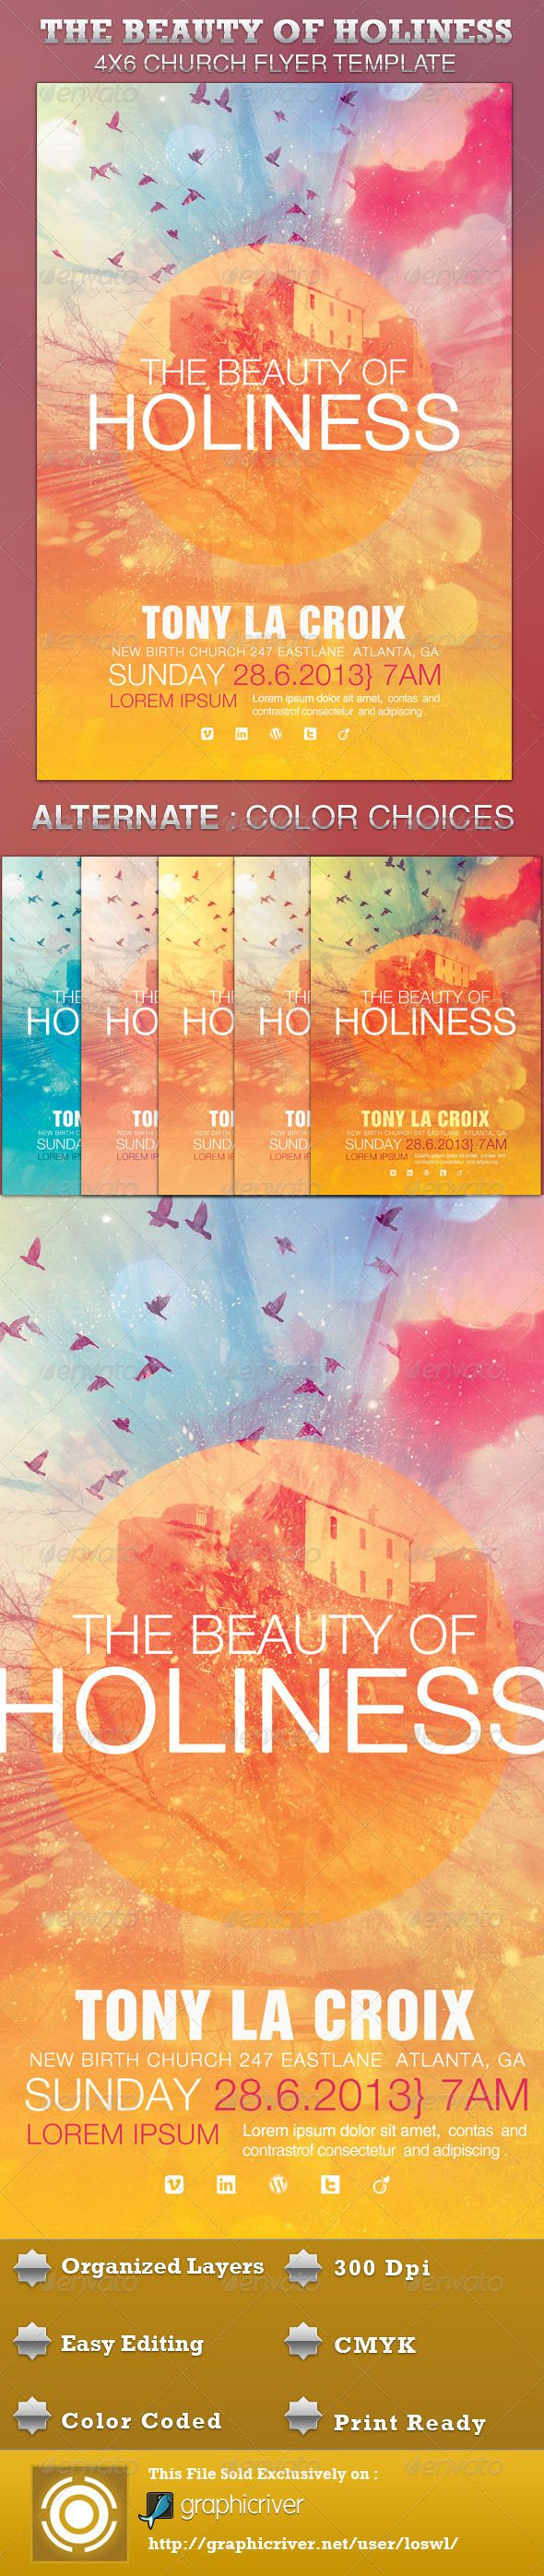 The Beauty of Holiness Church Flyer Template is great for any Church Event. Use it for Gospel Concerts, Pageants, Musical Events and Sermons, etc. The layered Photoshop files are color coded and organized in folders for easy editing. The file also contains 6 – One Click Color options. $6.00